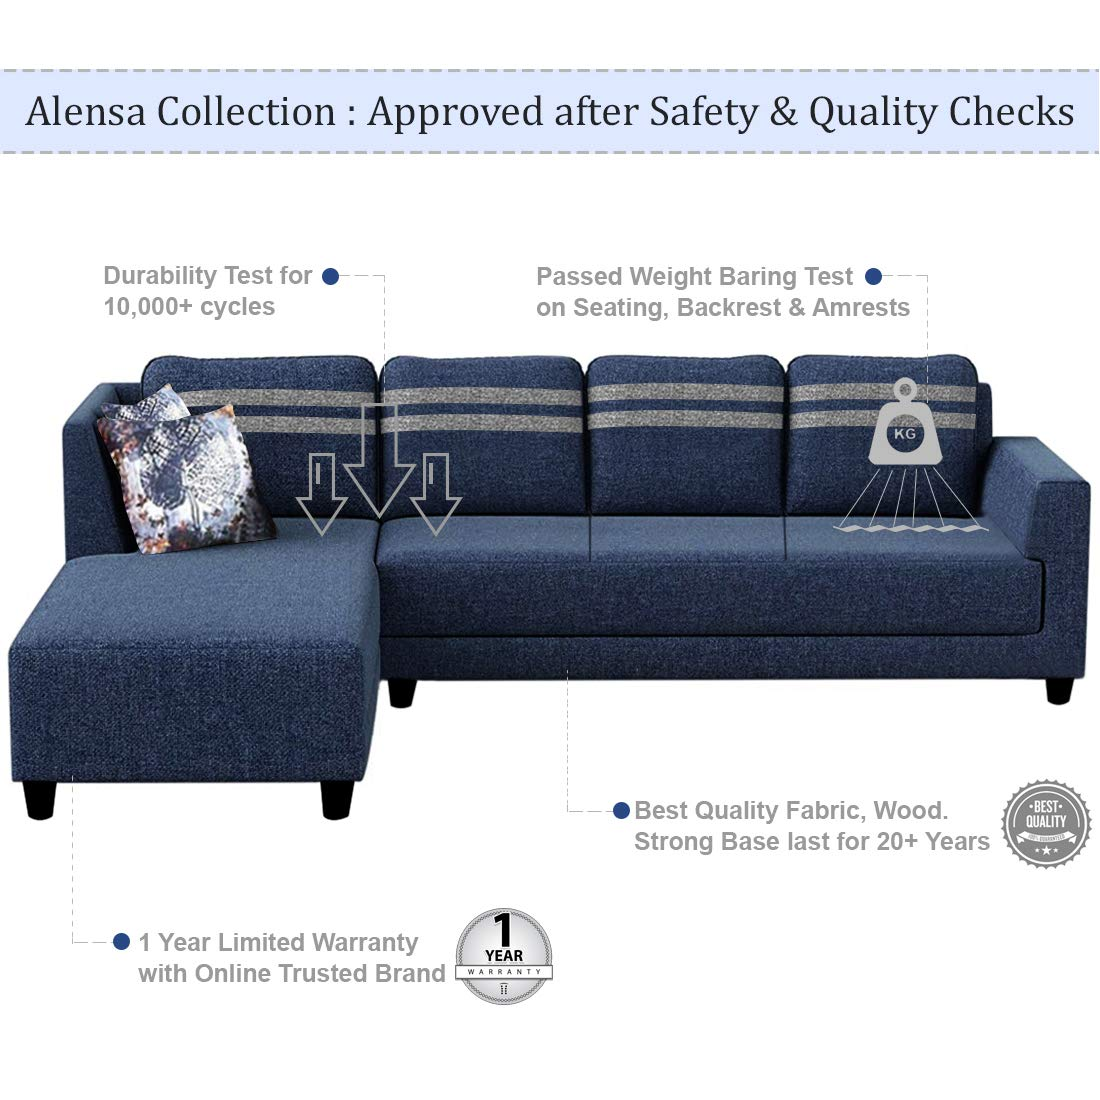 CasaStyle - Alensa 6 Seater LHS L Shape Sofa Set for Living Rooms (Blue)